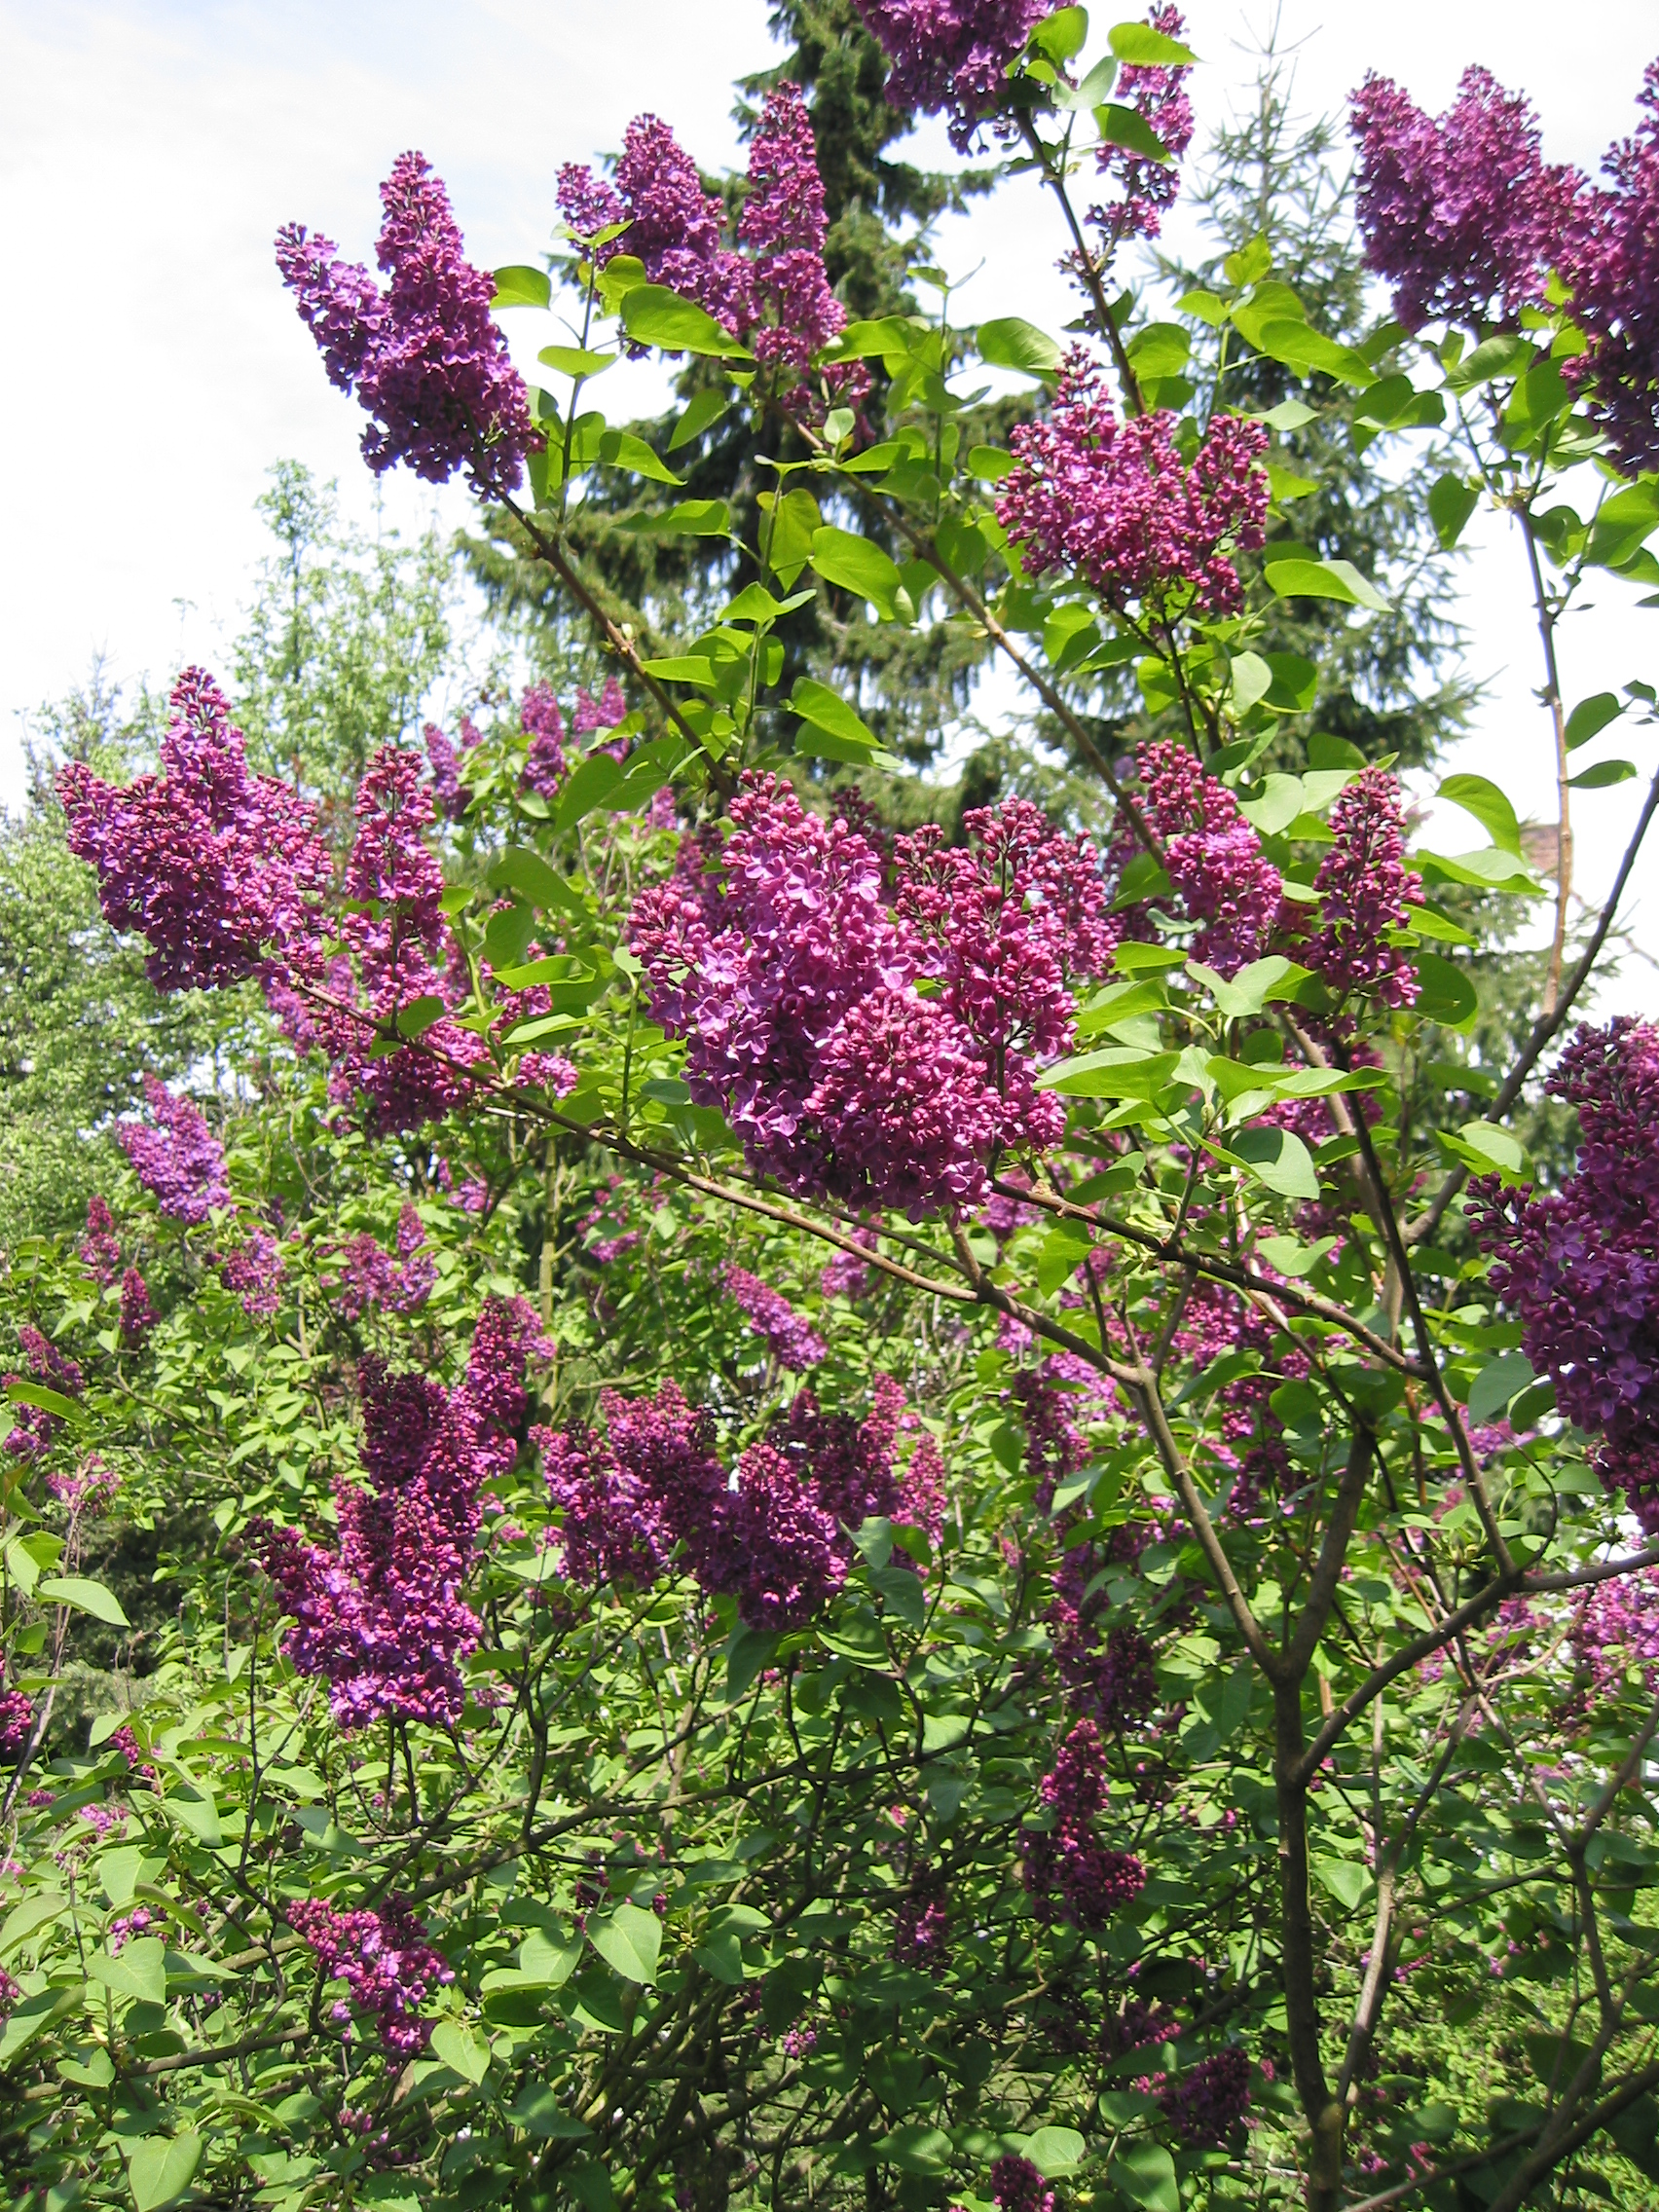 Syringa vulgaris (Common lilac)